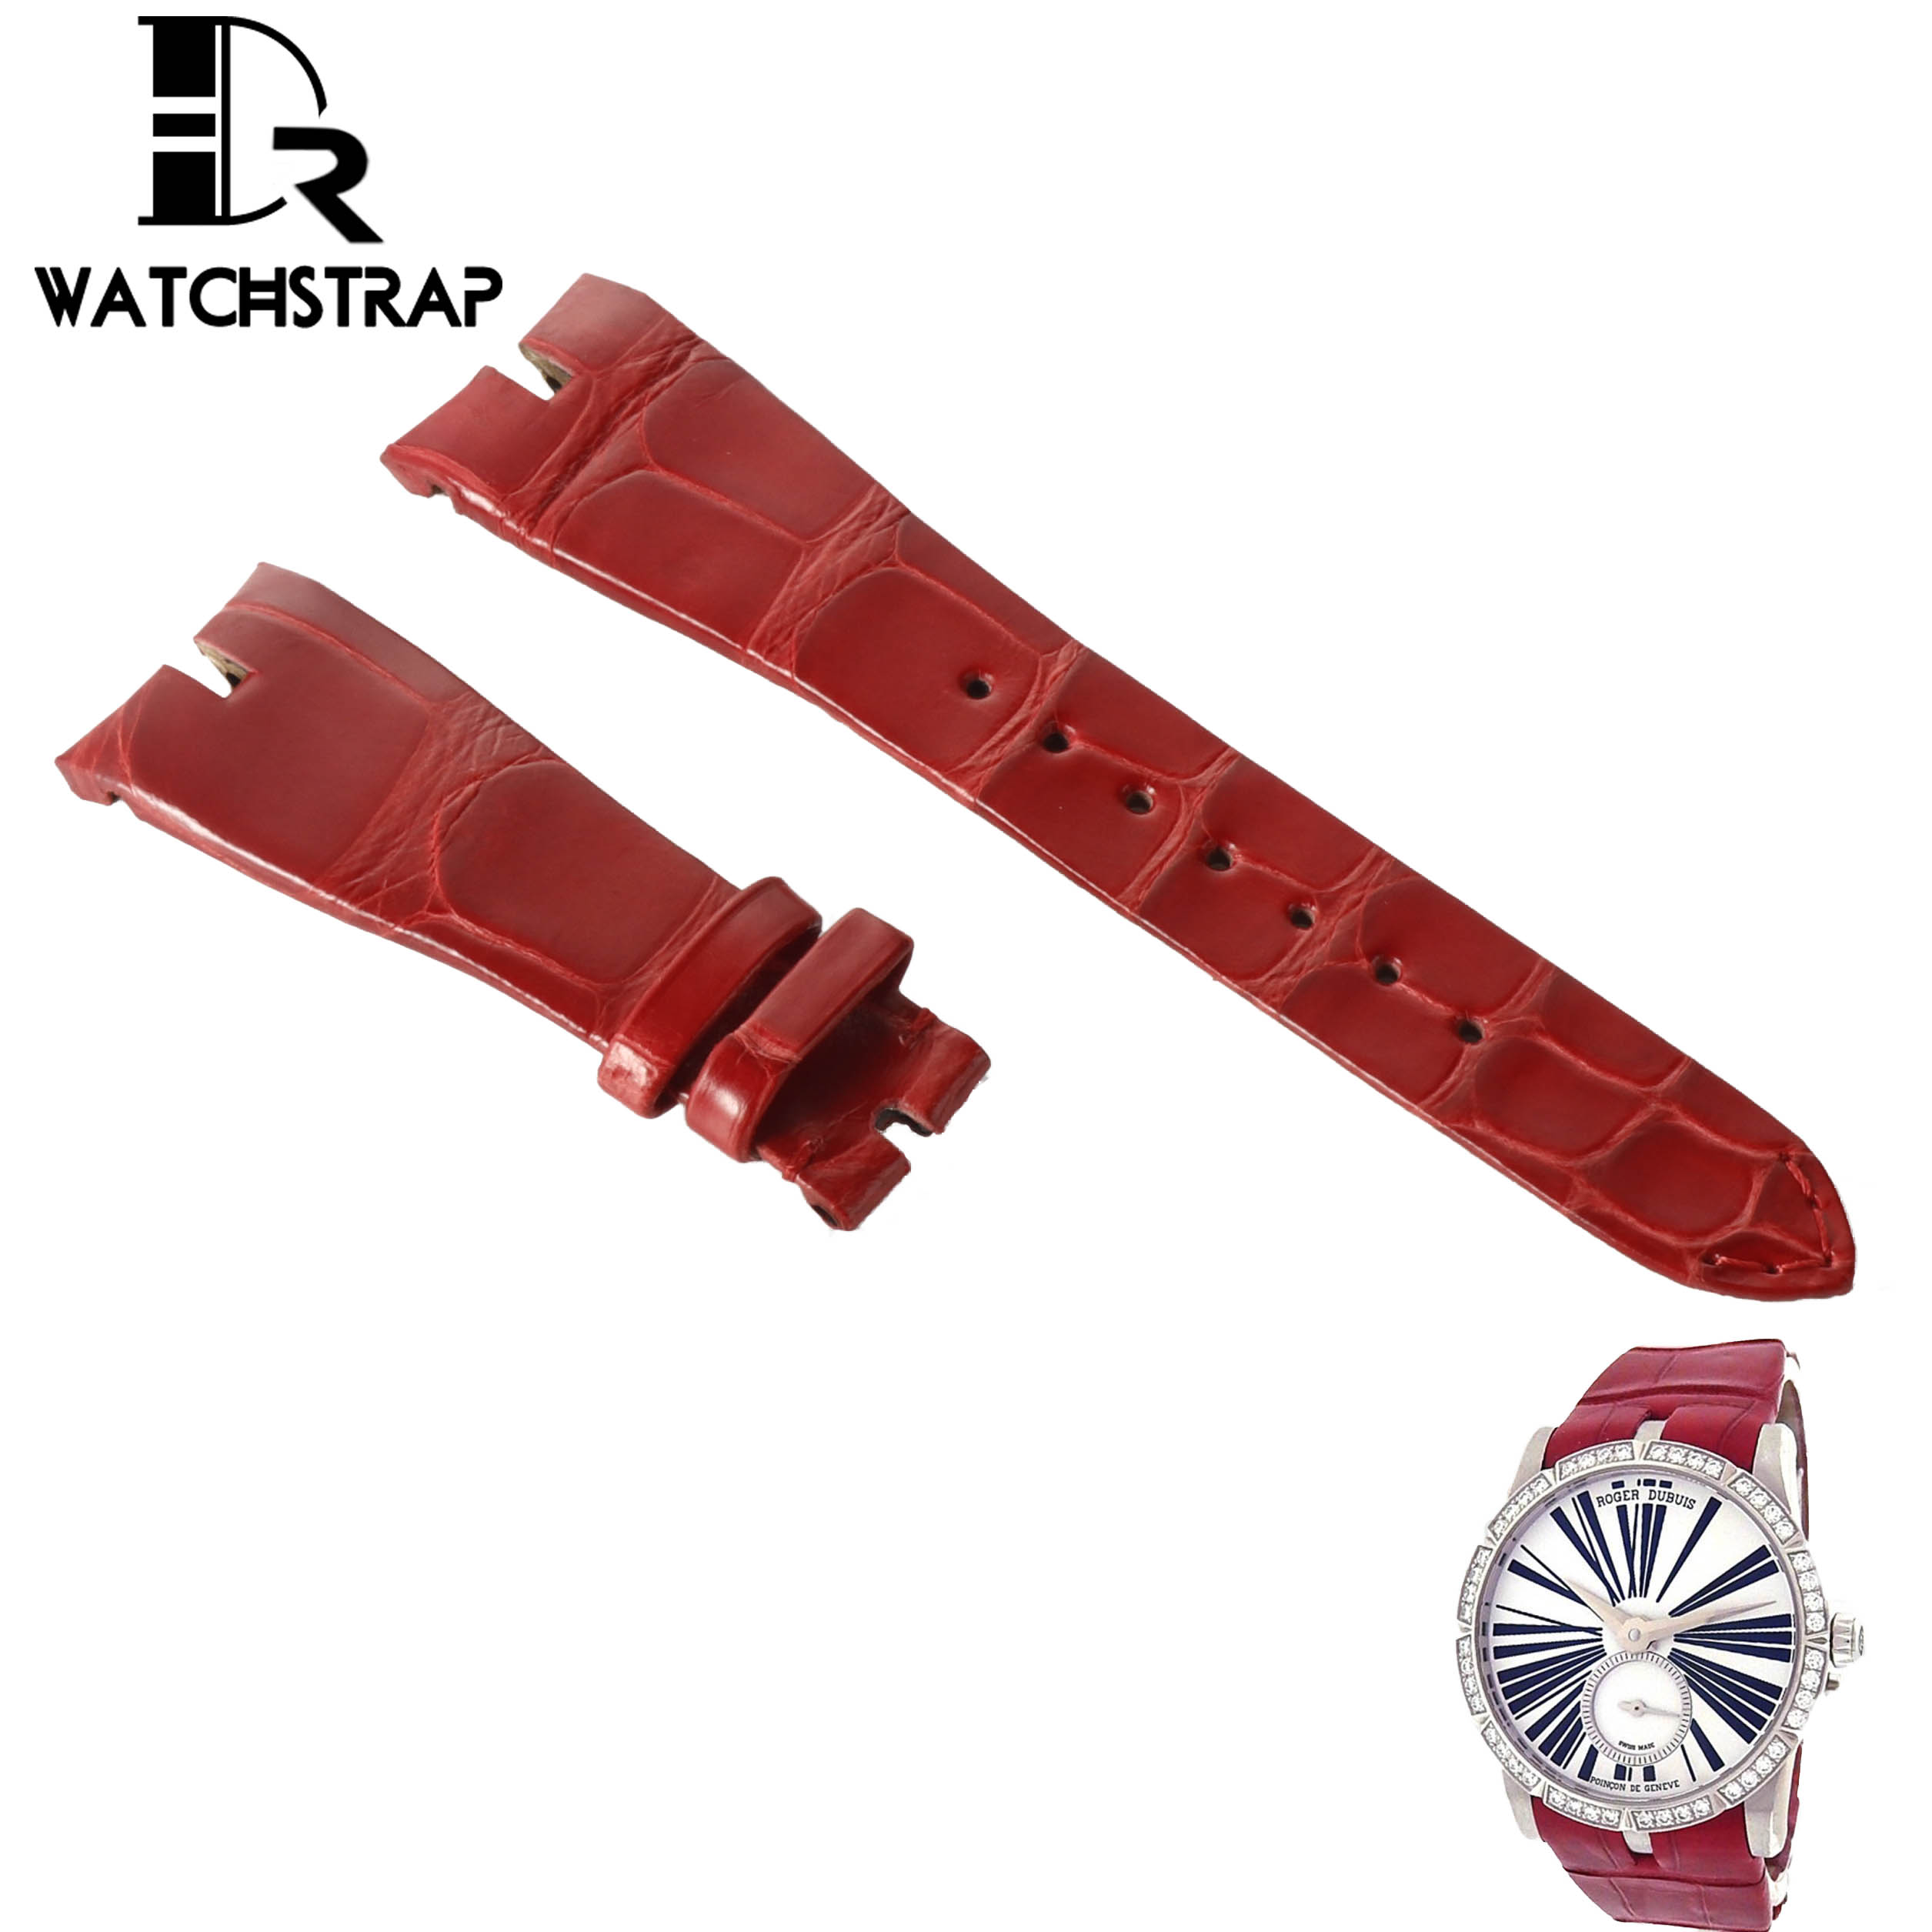 Red-leather-watch-band-for-Roger-Dubuis-Excalibur-ladies-women-watch